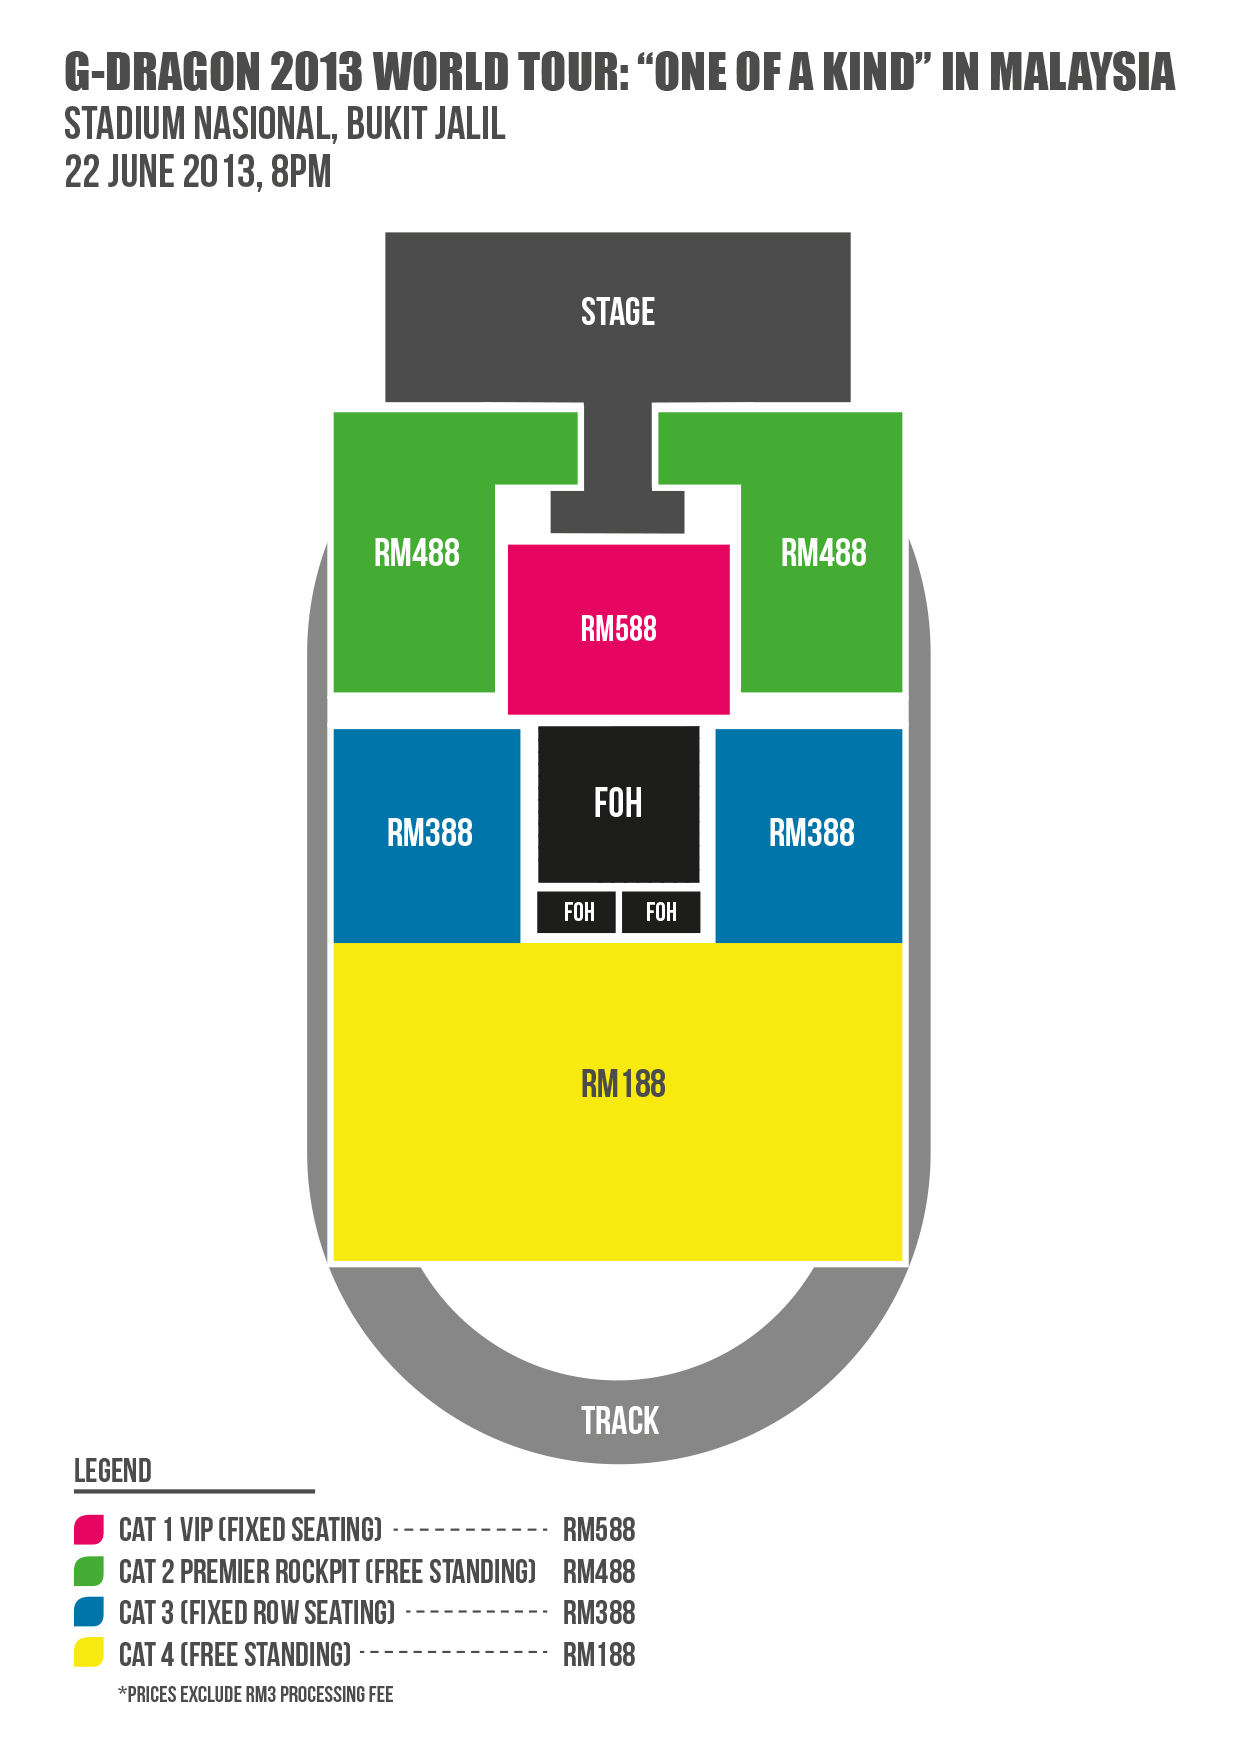 G-DRAGON 2013 WORLD TOUR ONE OF A KIND IN MALAYSIA _Seatmap